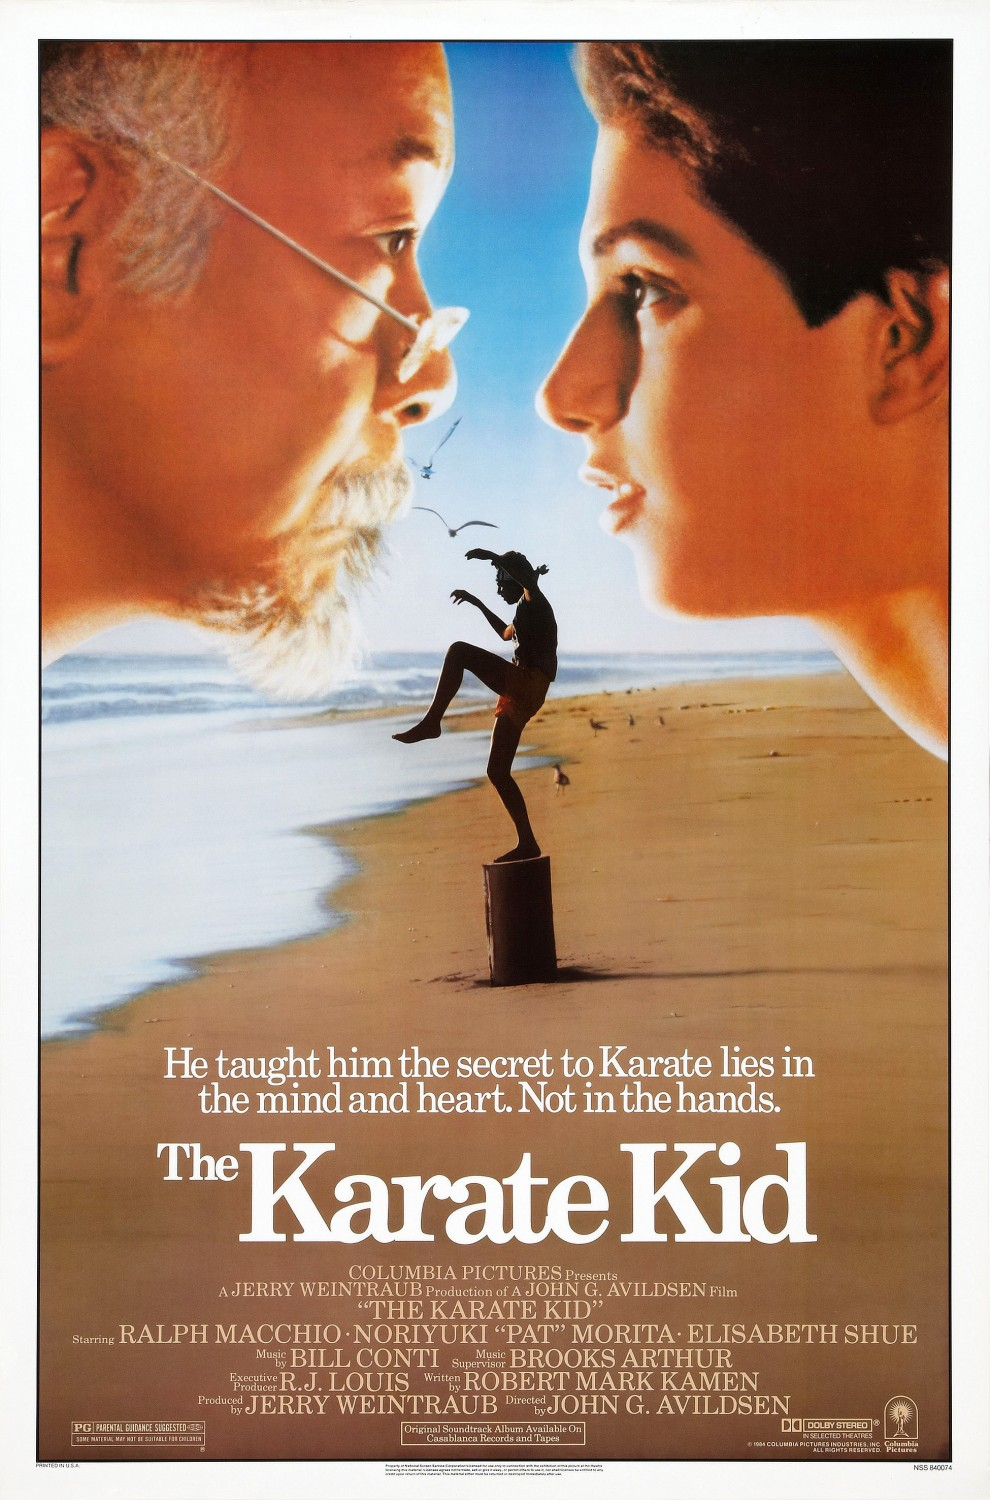 https://i1.wp.com/www.impawards.com/1984/posters/karate_kid_xlg.jpg